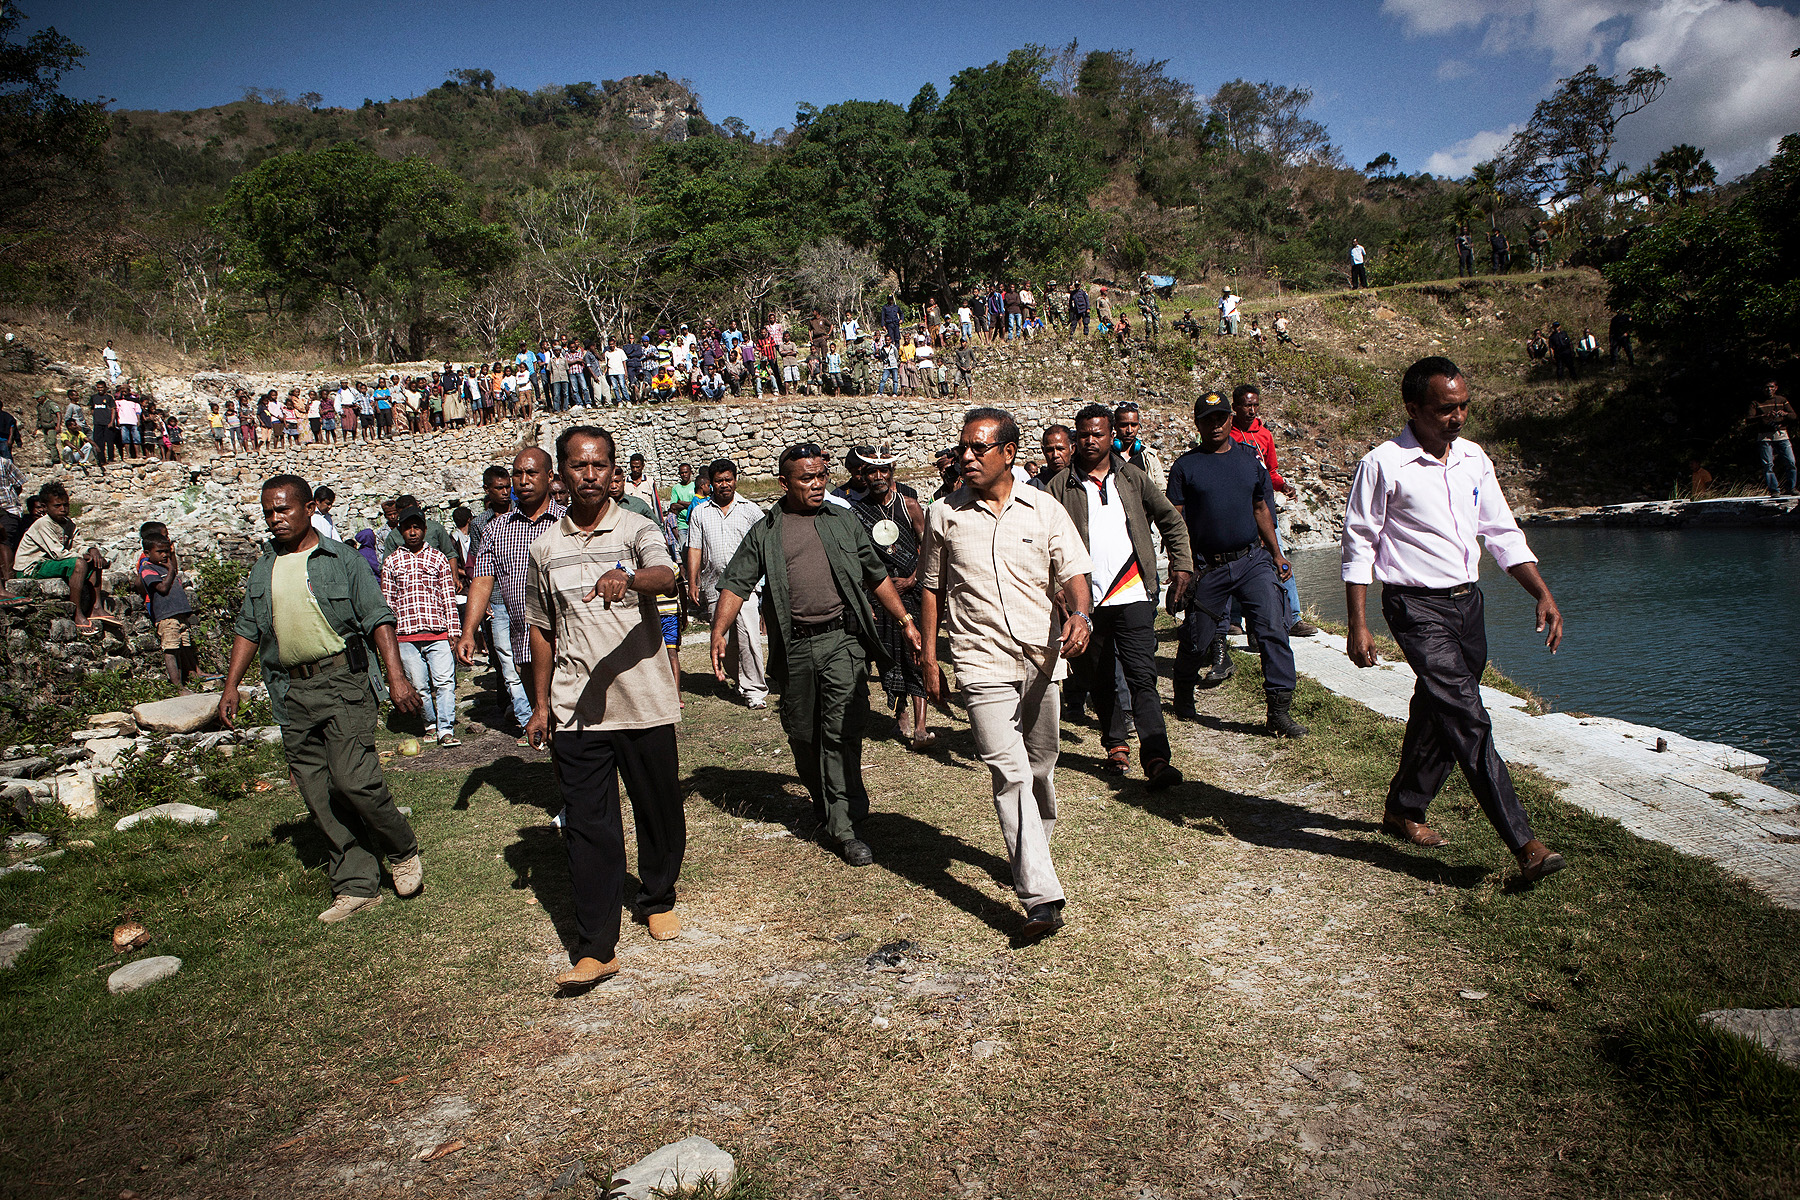 East Timor's President, Taur Matan Ruak takes regular trips to the most remote districts and walks from village to village to talk to villagers